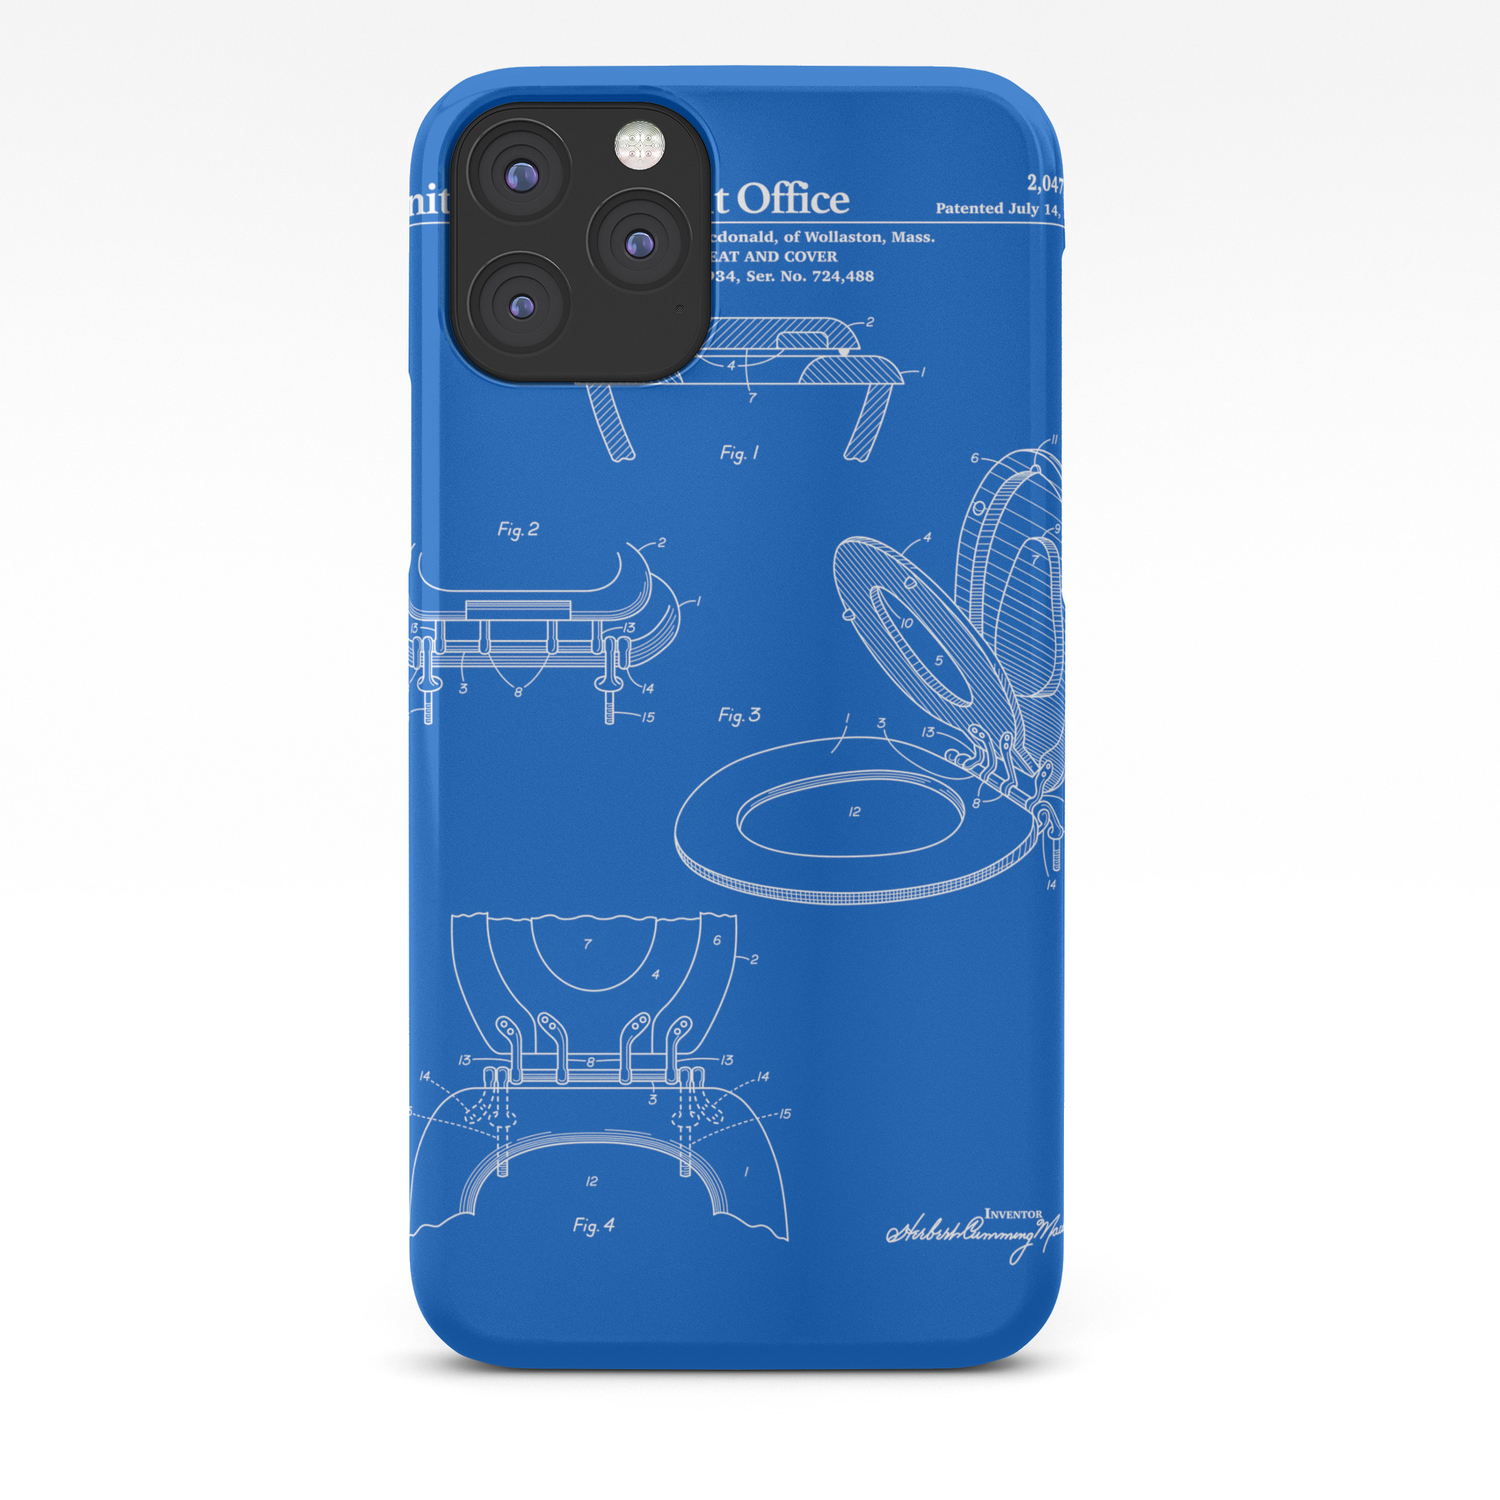 Toilet Seat And Cover Patent Blueprint Iphone Case By Finlaymcnevin Society6